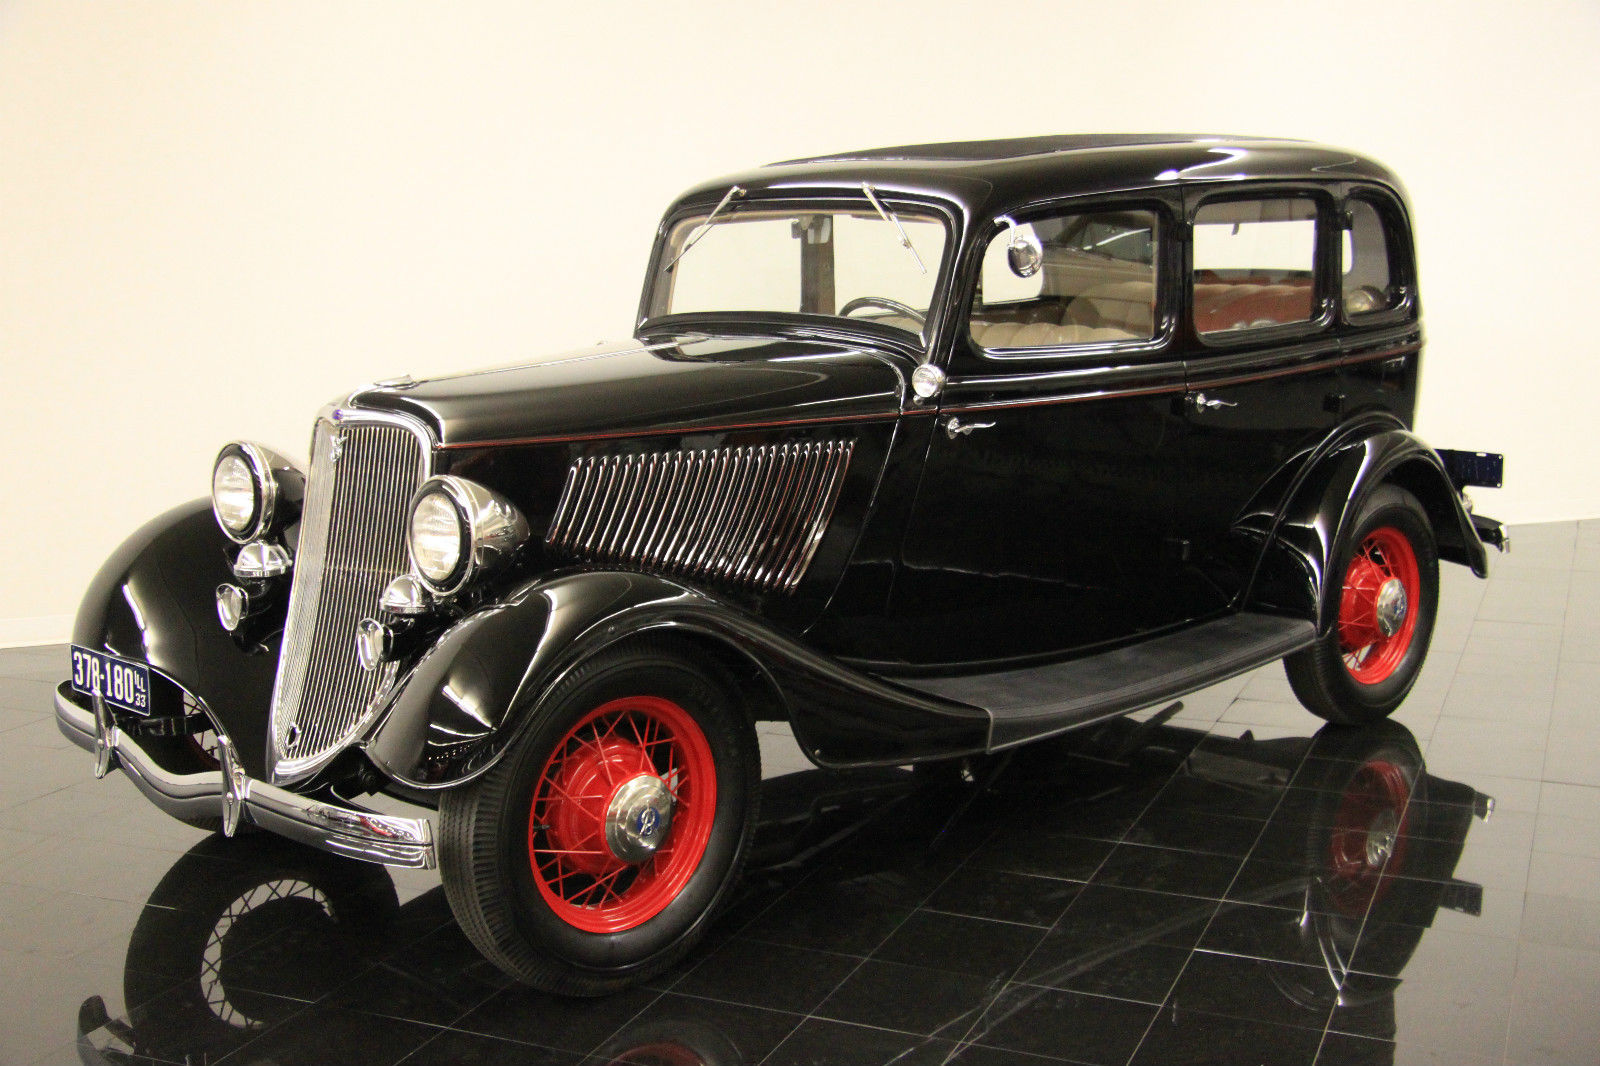 1933 ford model 40 deluxe fordor sedan concours restoration cartouche interior. Black Bedroom Furniture Sets. Home Design Ideas